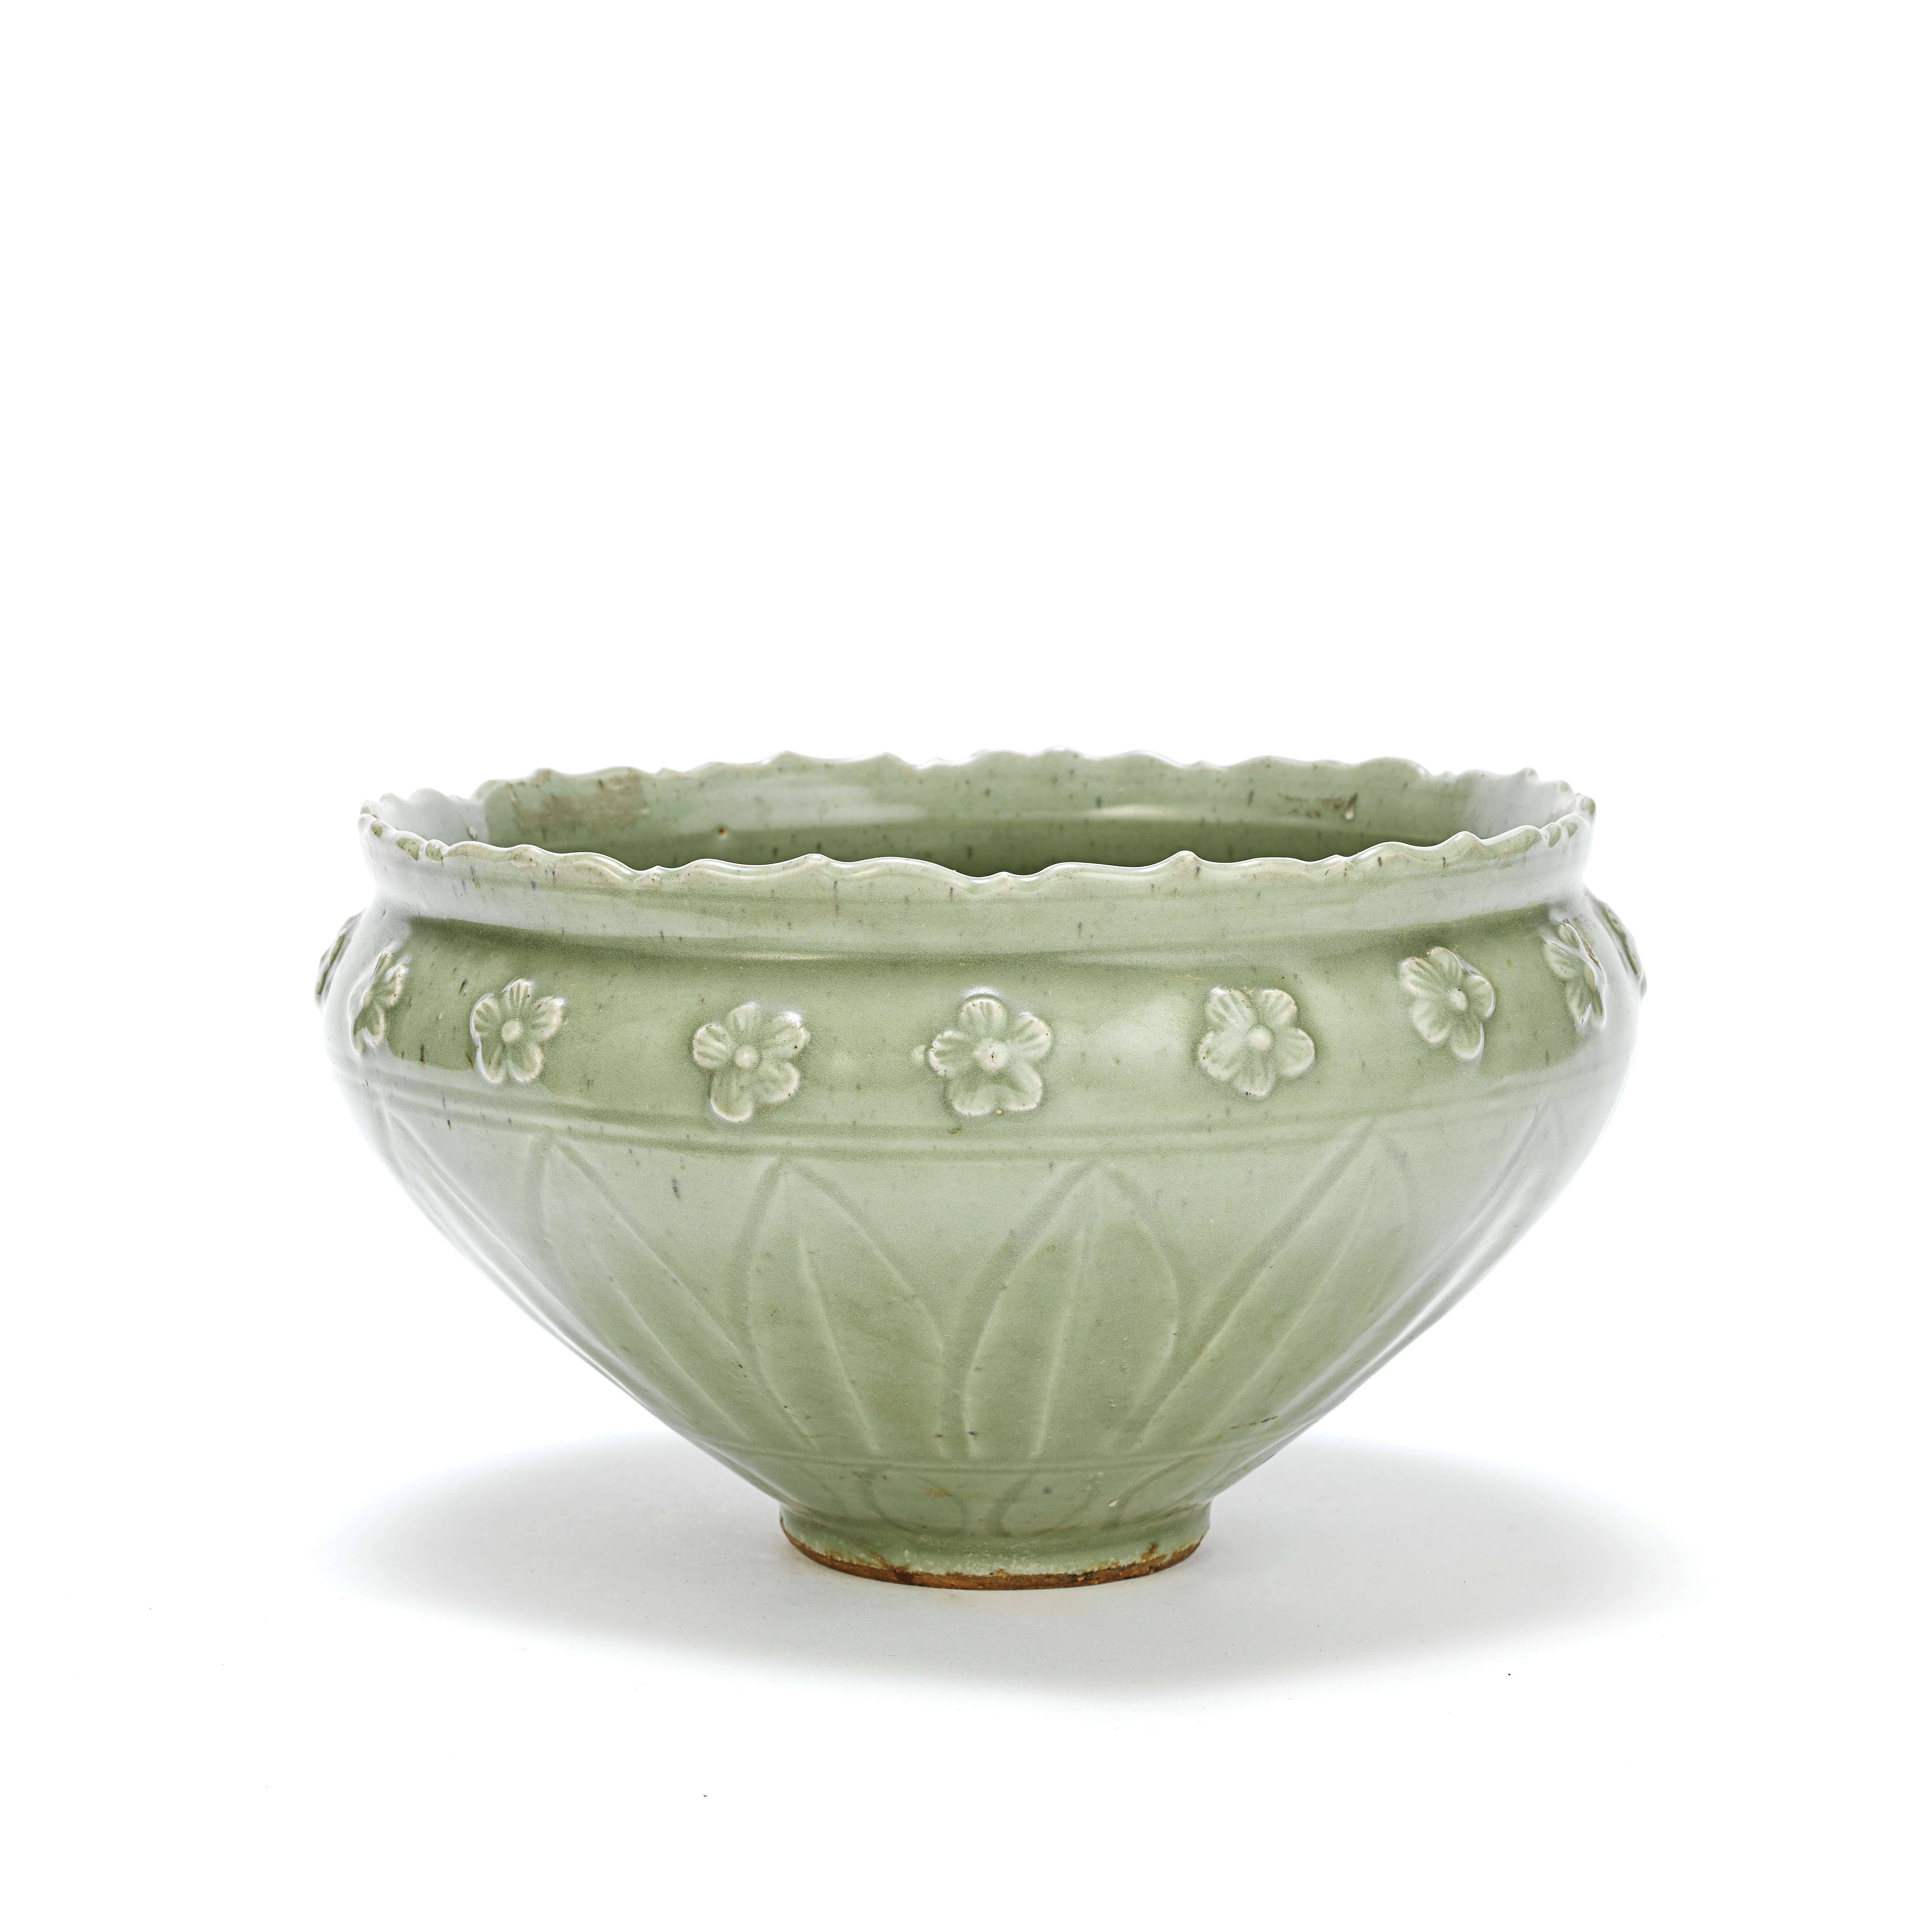 AN UNUSUAL LONGQUAN CELADON-GLAZED CONICAL 'LOTUS AND PRUNUS' BOWL Ming Dynasty